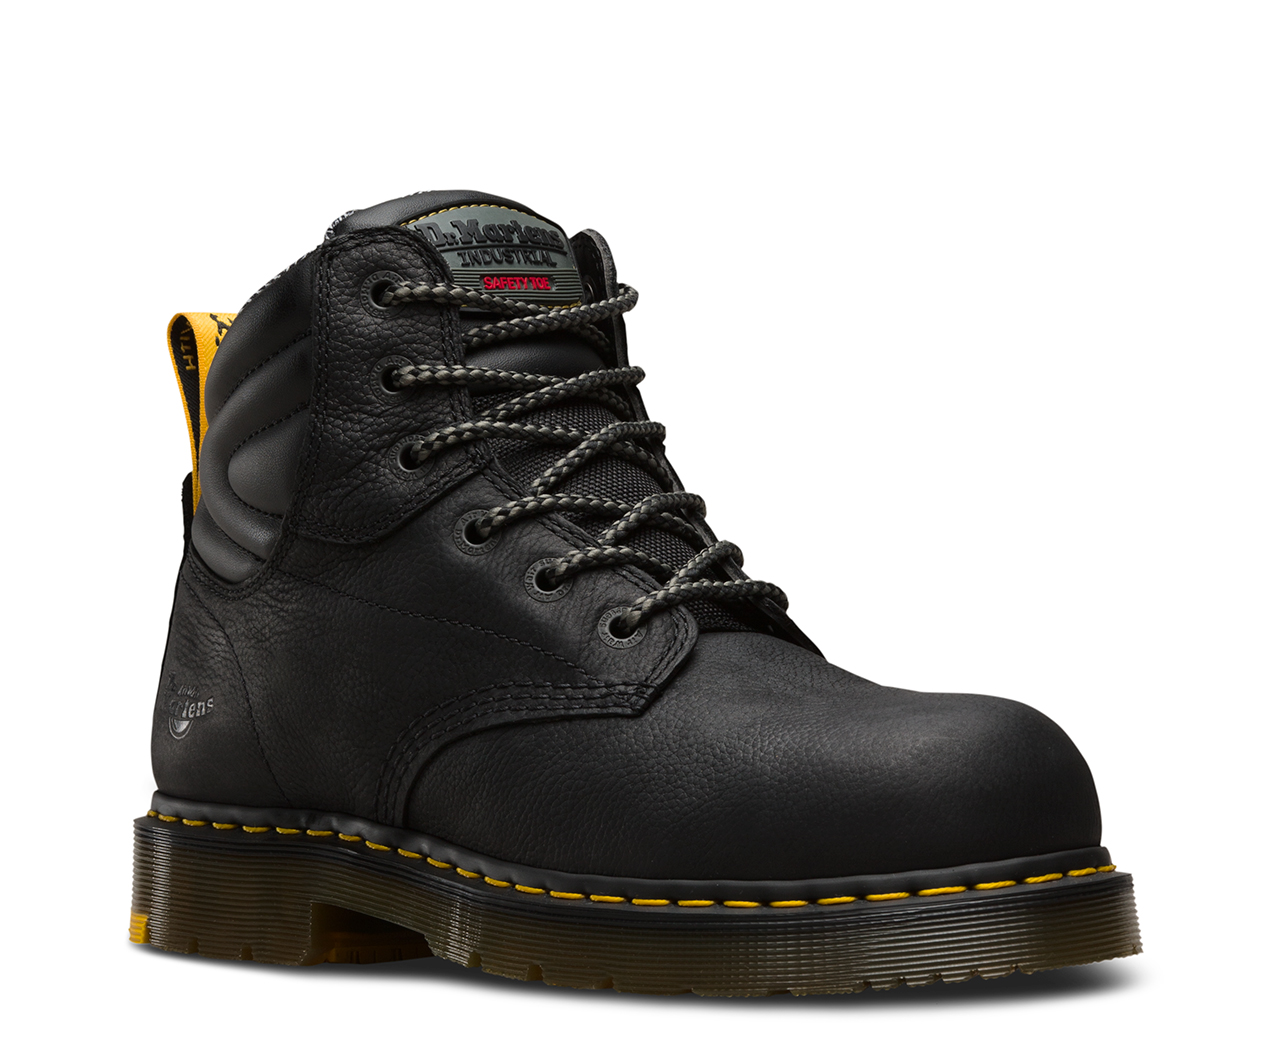 Hynine Steel Toe Industrial New Arrivals Dr Martens